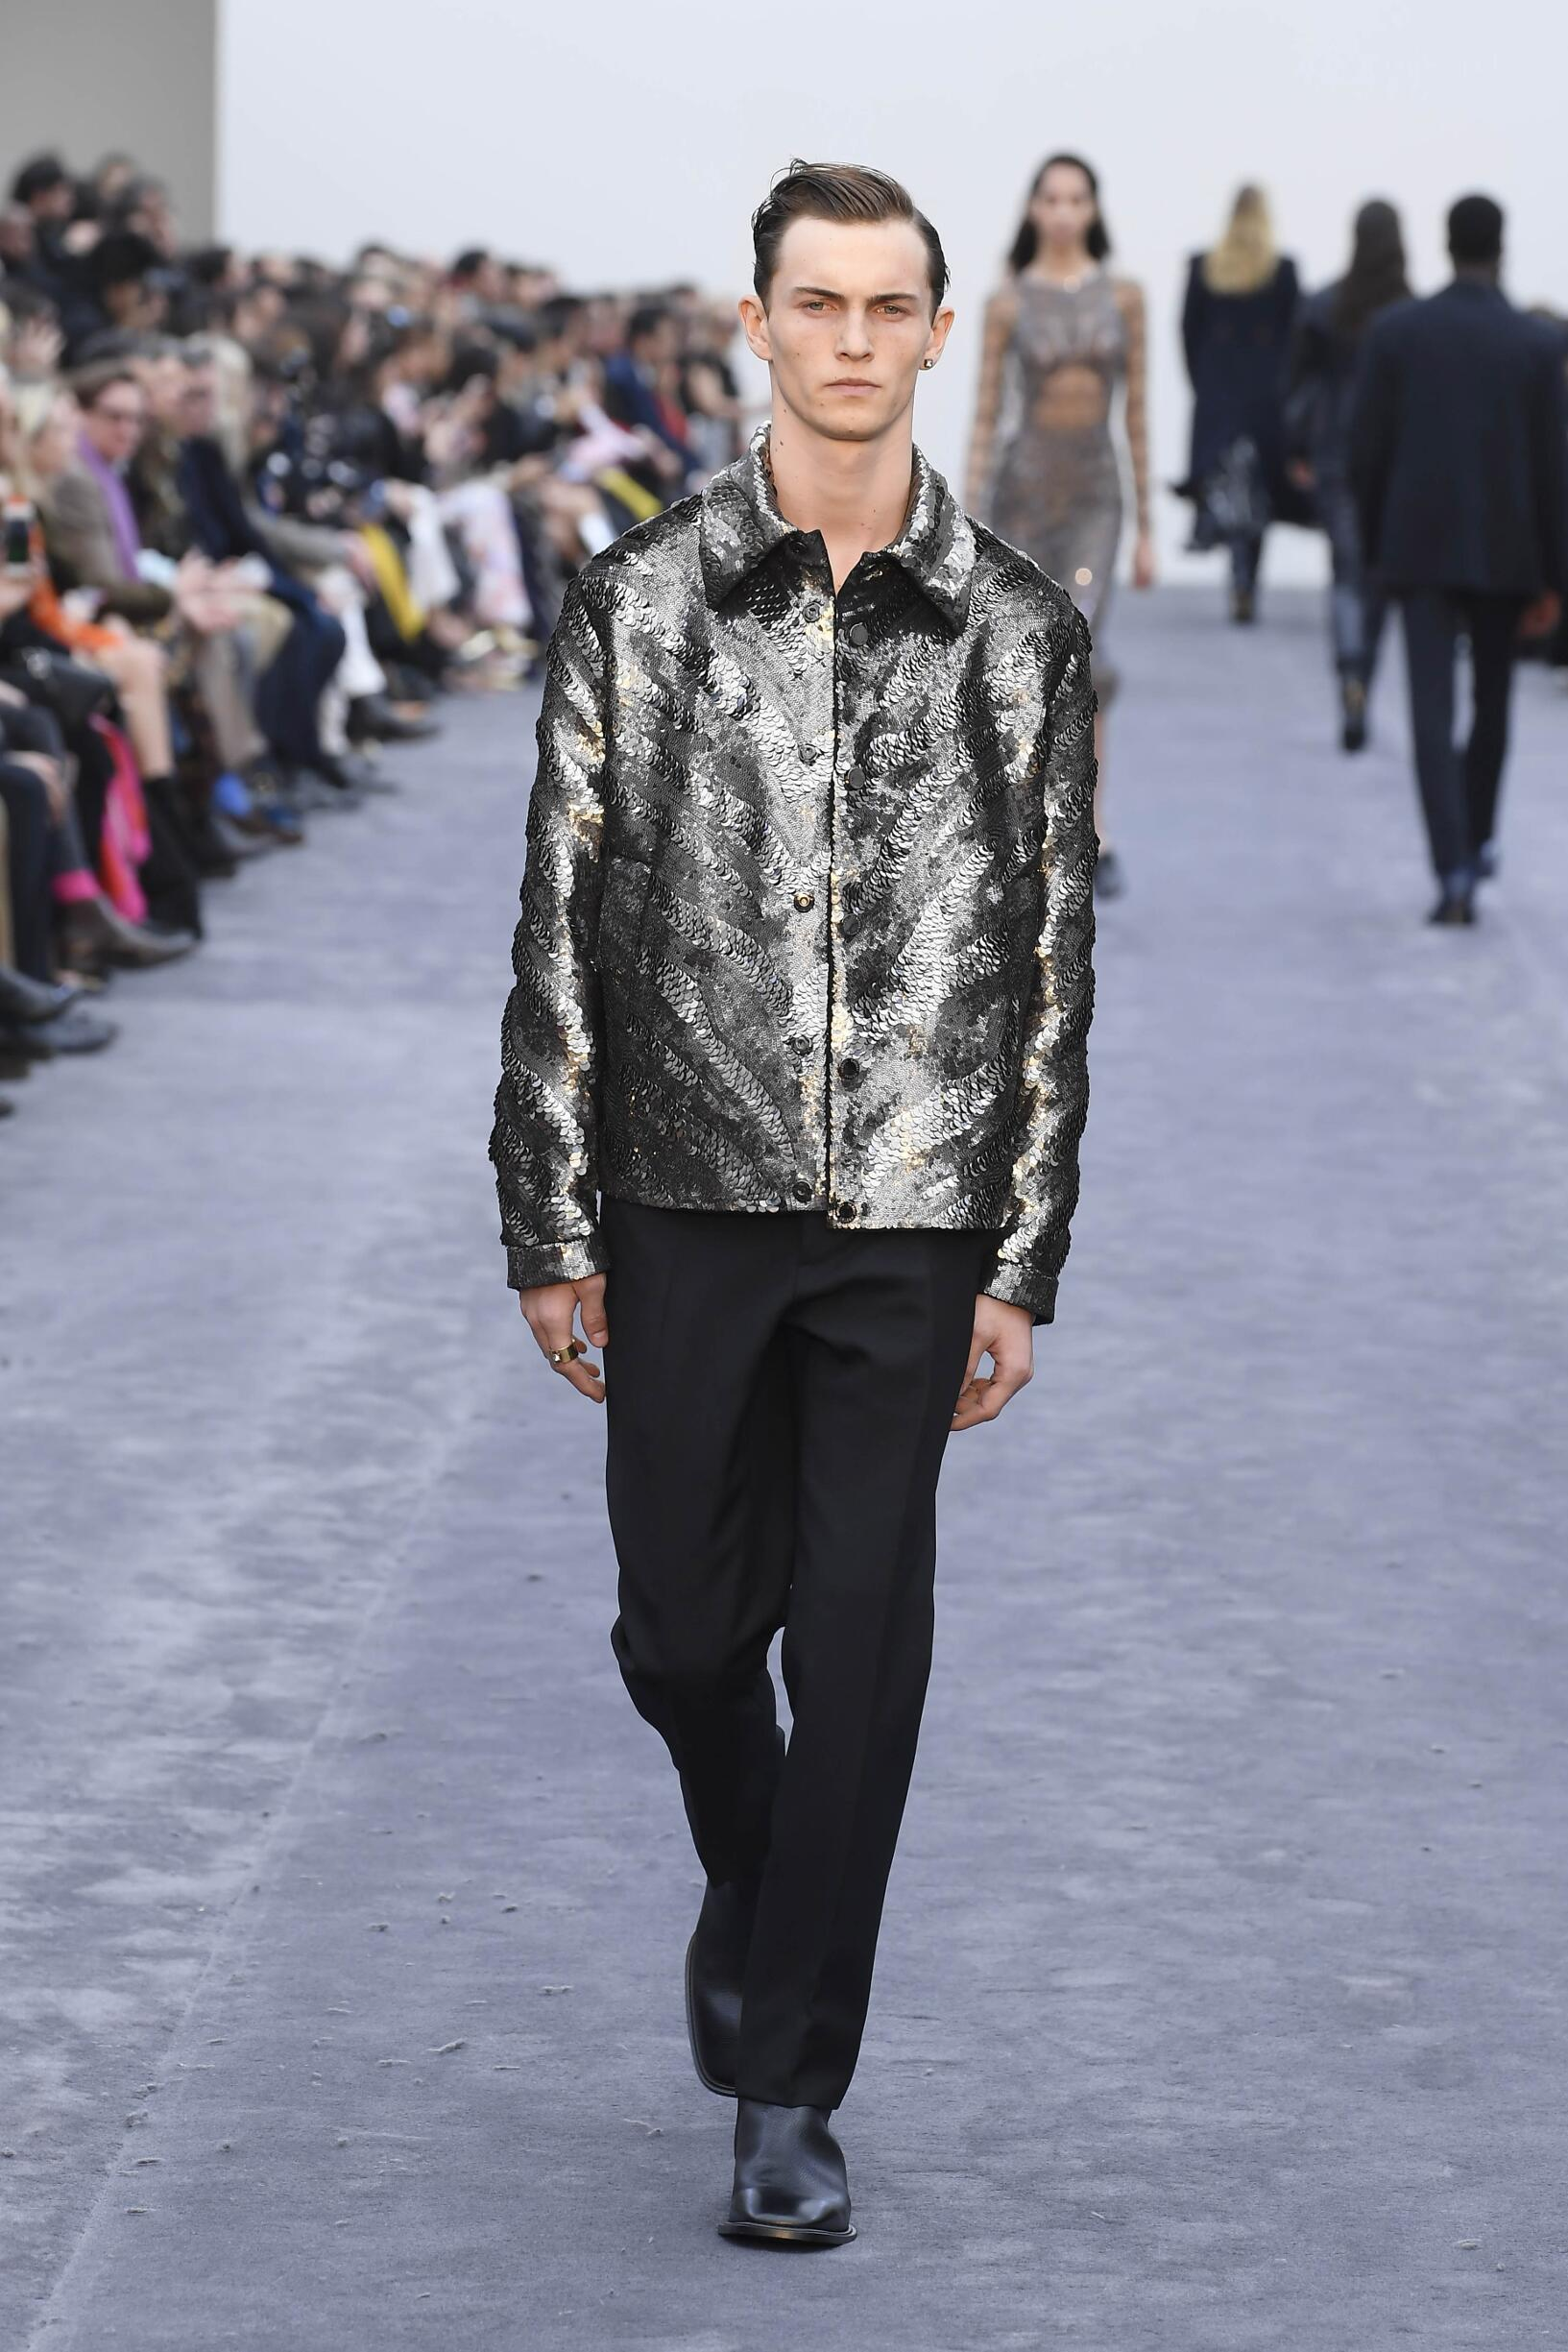 2019 Catwalk Roberto Cavalli Man Fashion Show Winter